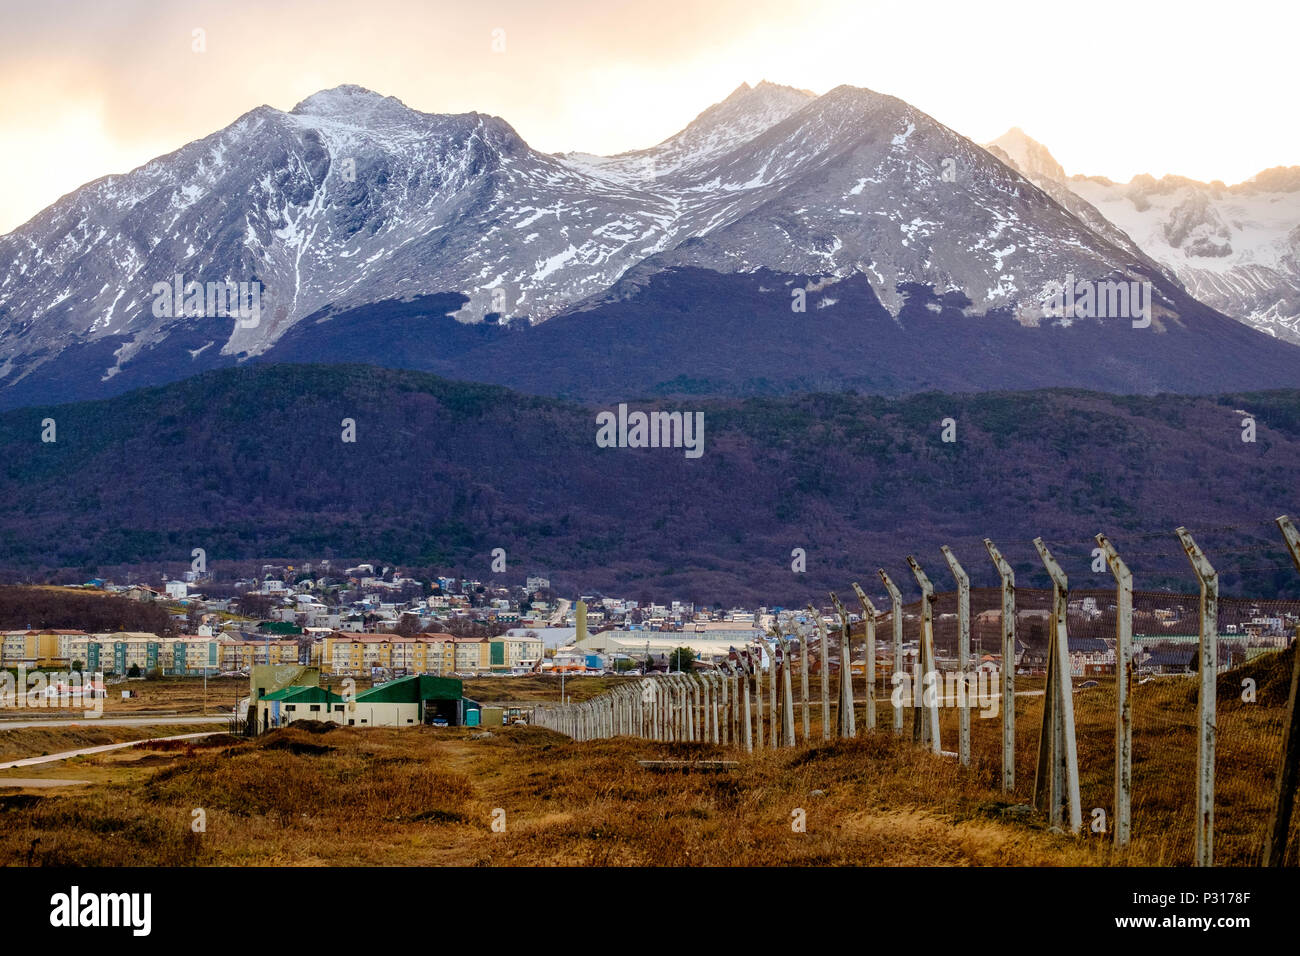 The Martial mountains, with the Martial Glacier at the extreme right, look out over the city of Ushuaia. The forest shows the colors of the autumn. Stock Photo